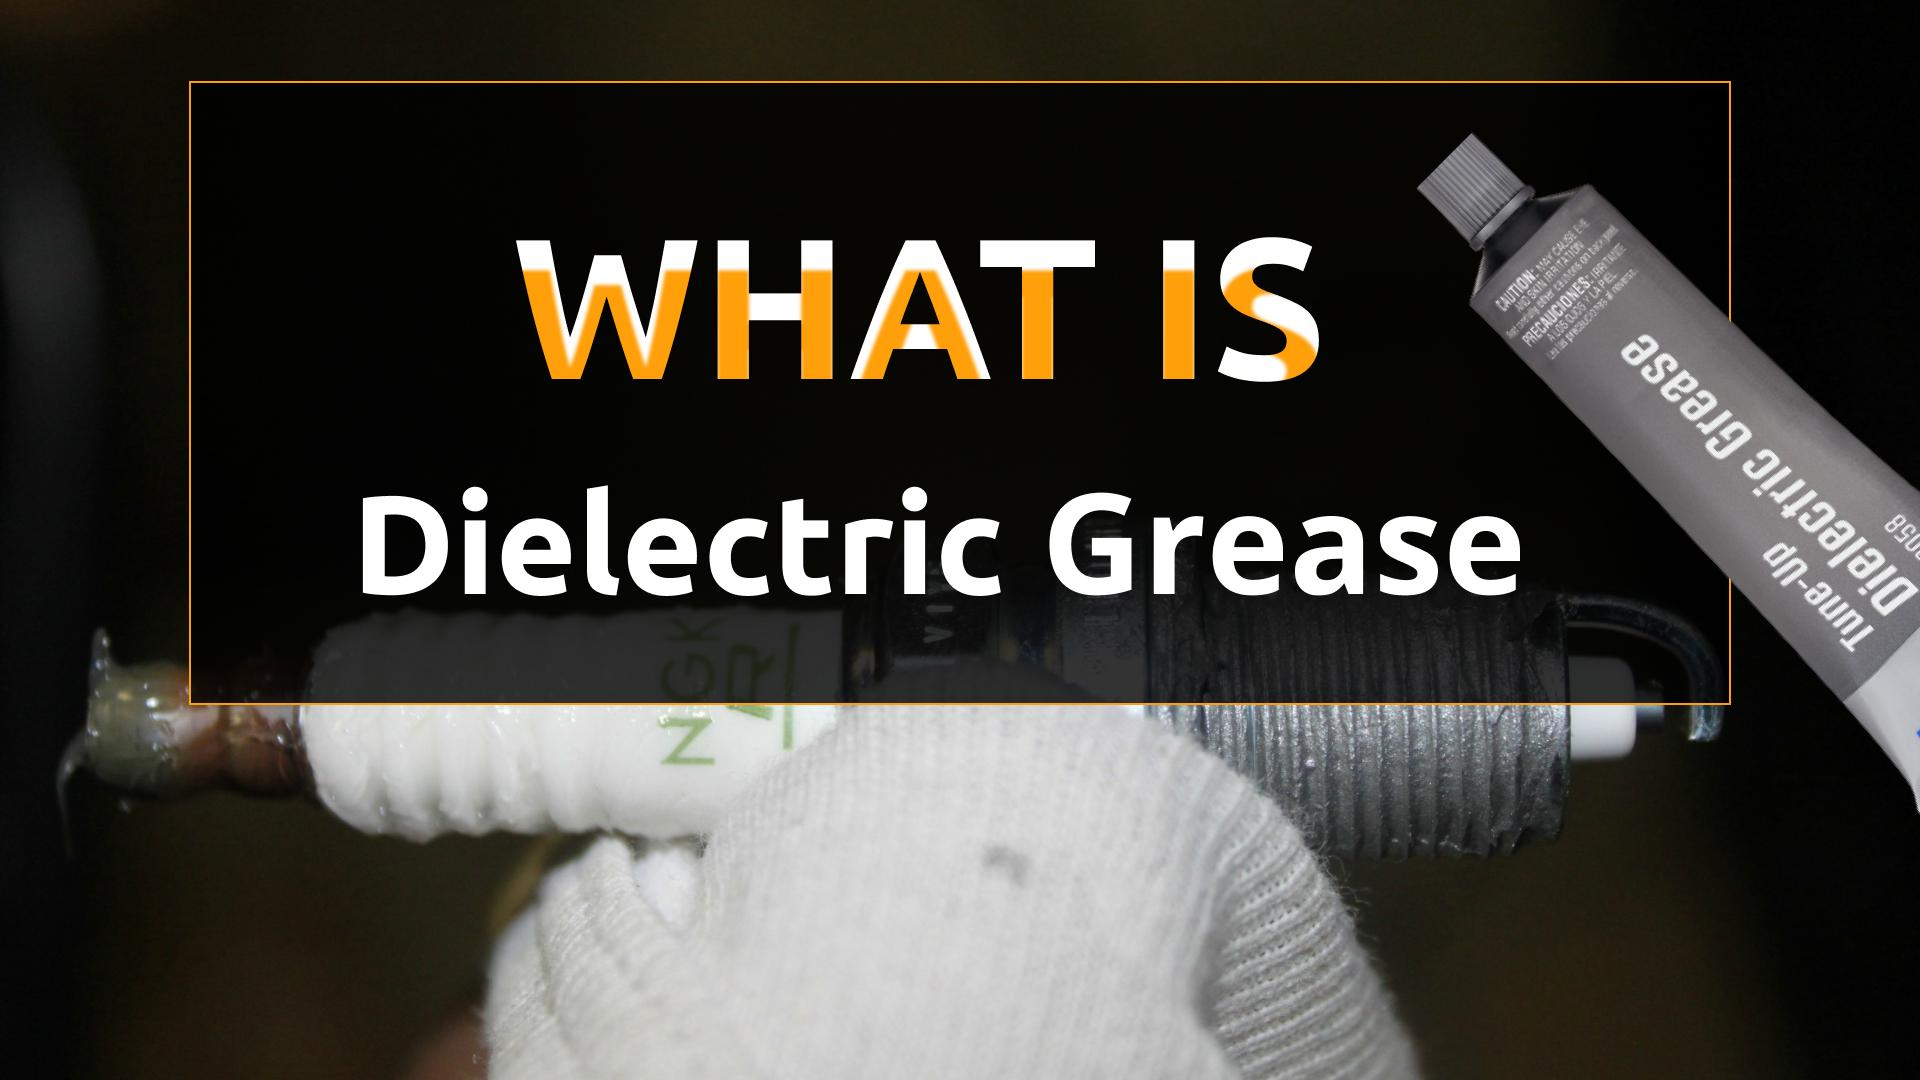 Dielectric Grease: image